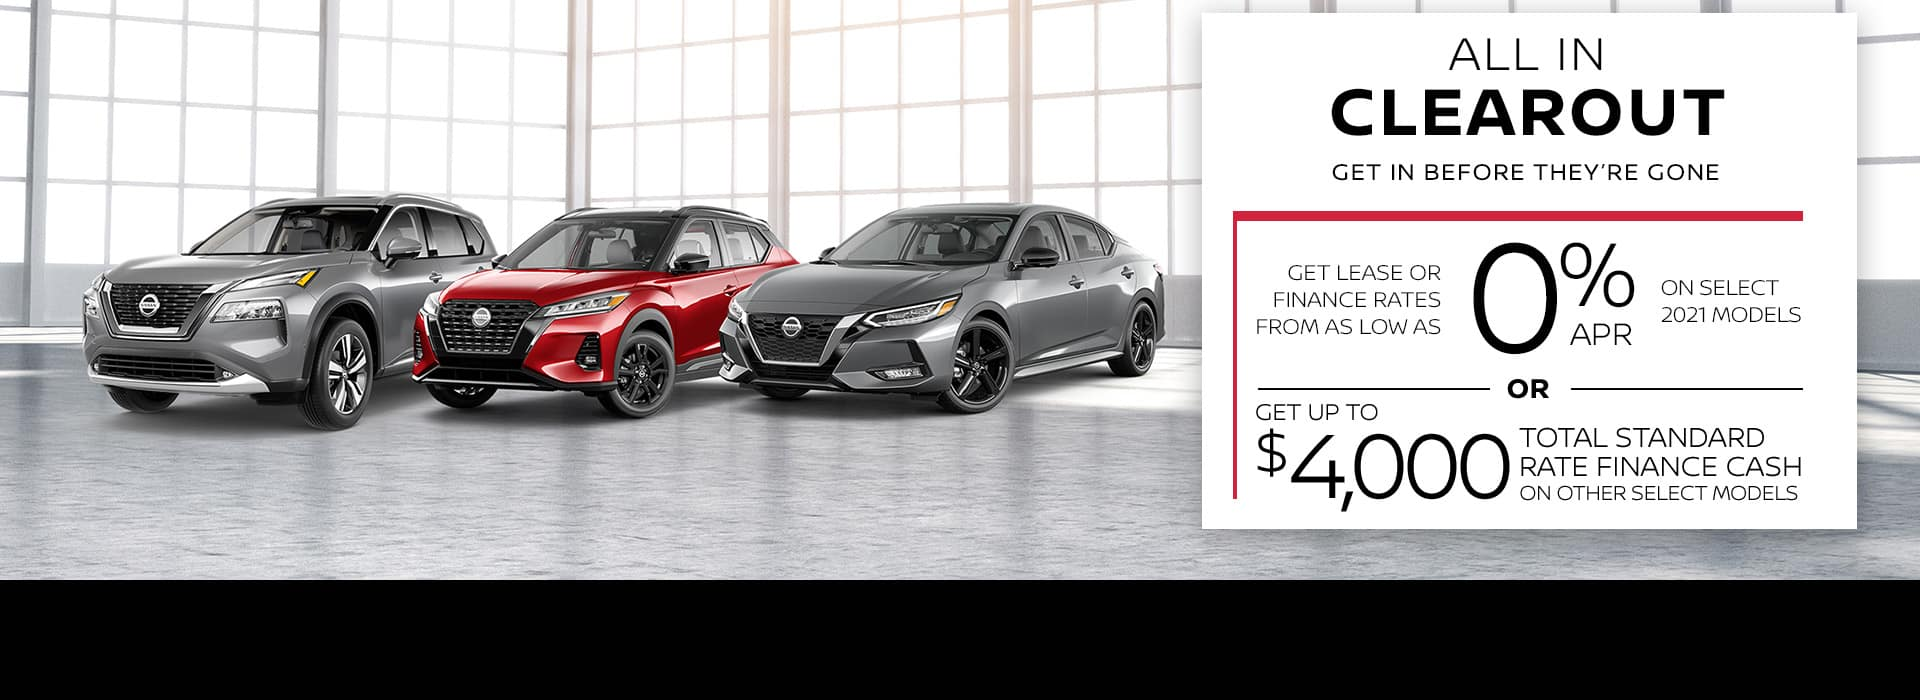 Nissan's All In Clearout Event